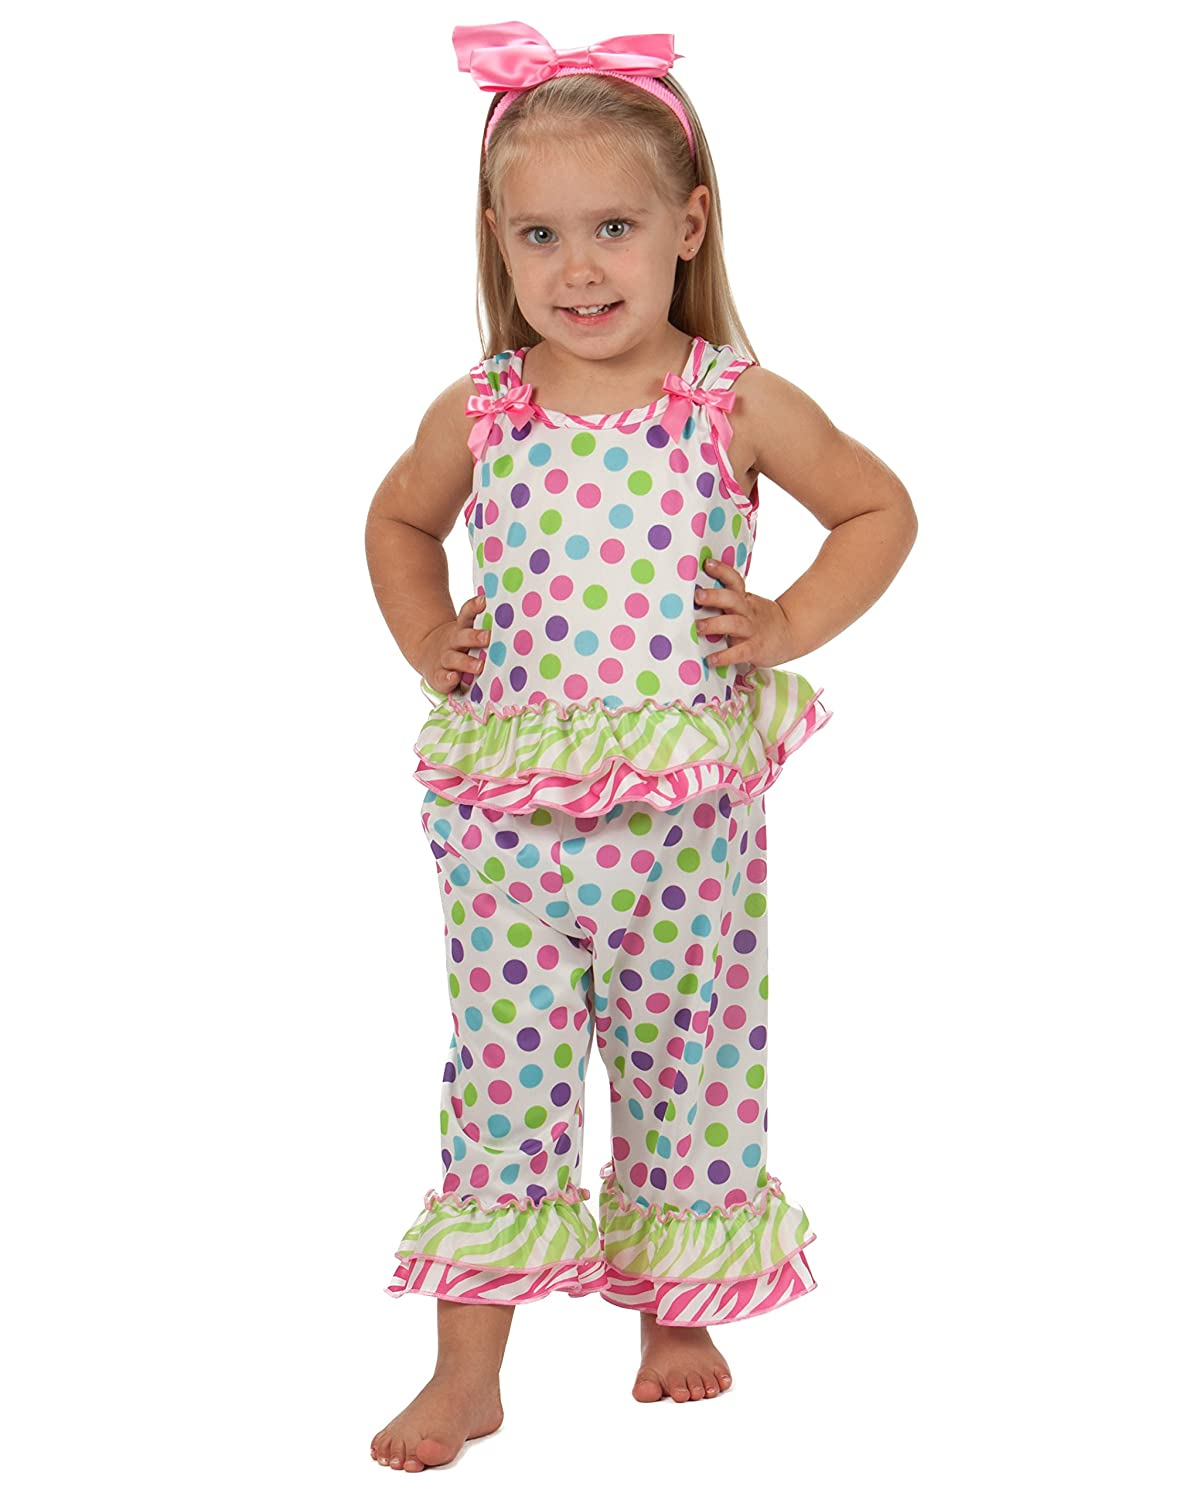 最も信頼できる ローラDare Baby Girls Gumballs Gumballs Bow Top PJ PJ Set 24 Bow Months マルチ B01BI2RC0O, 文具文房具のKDM:b83c5ee9 --- a0267596.xsph.ru